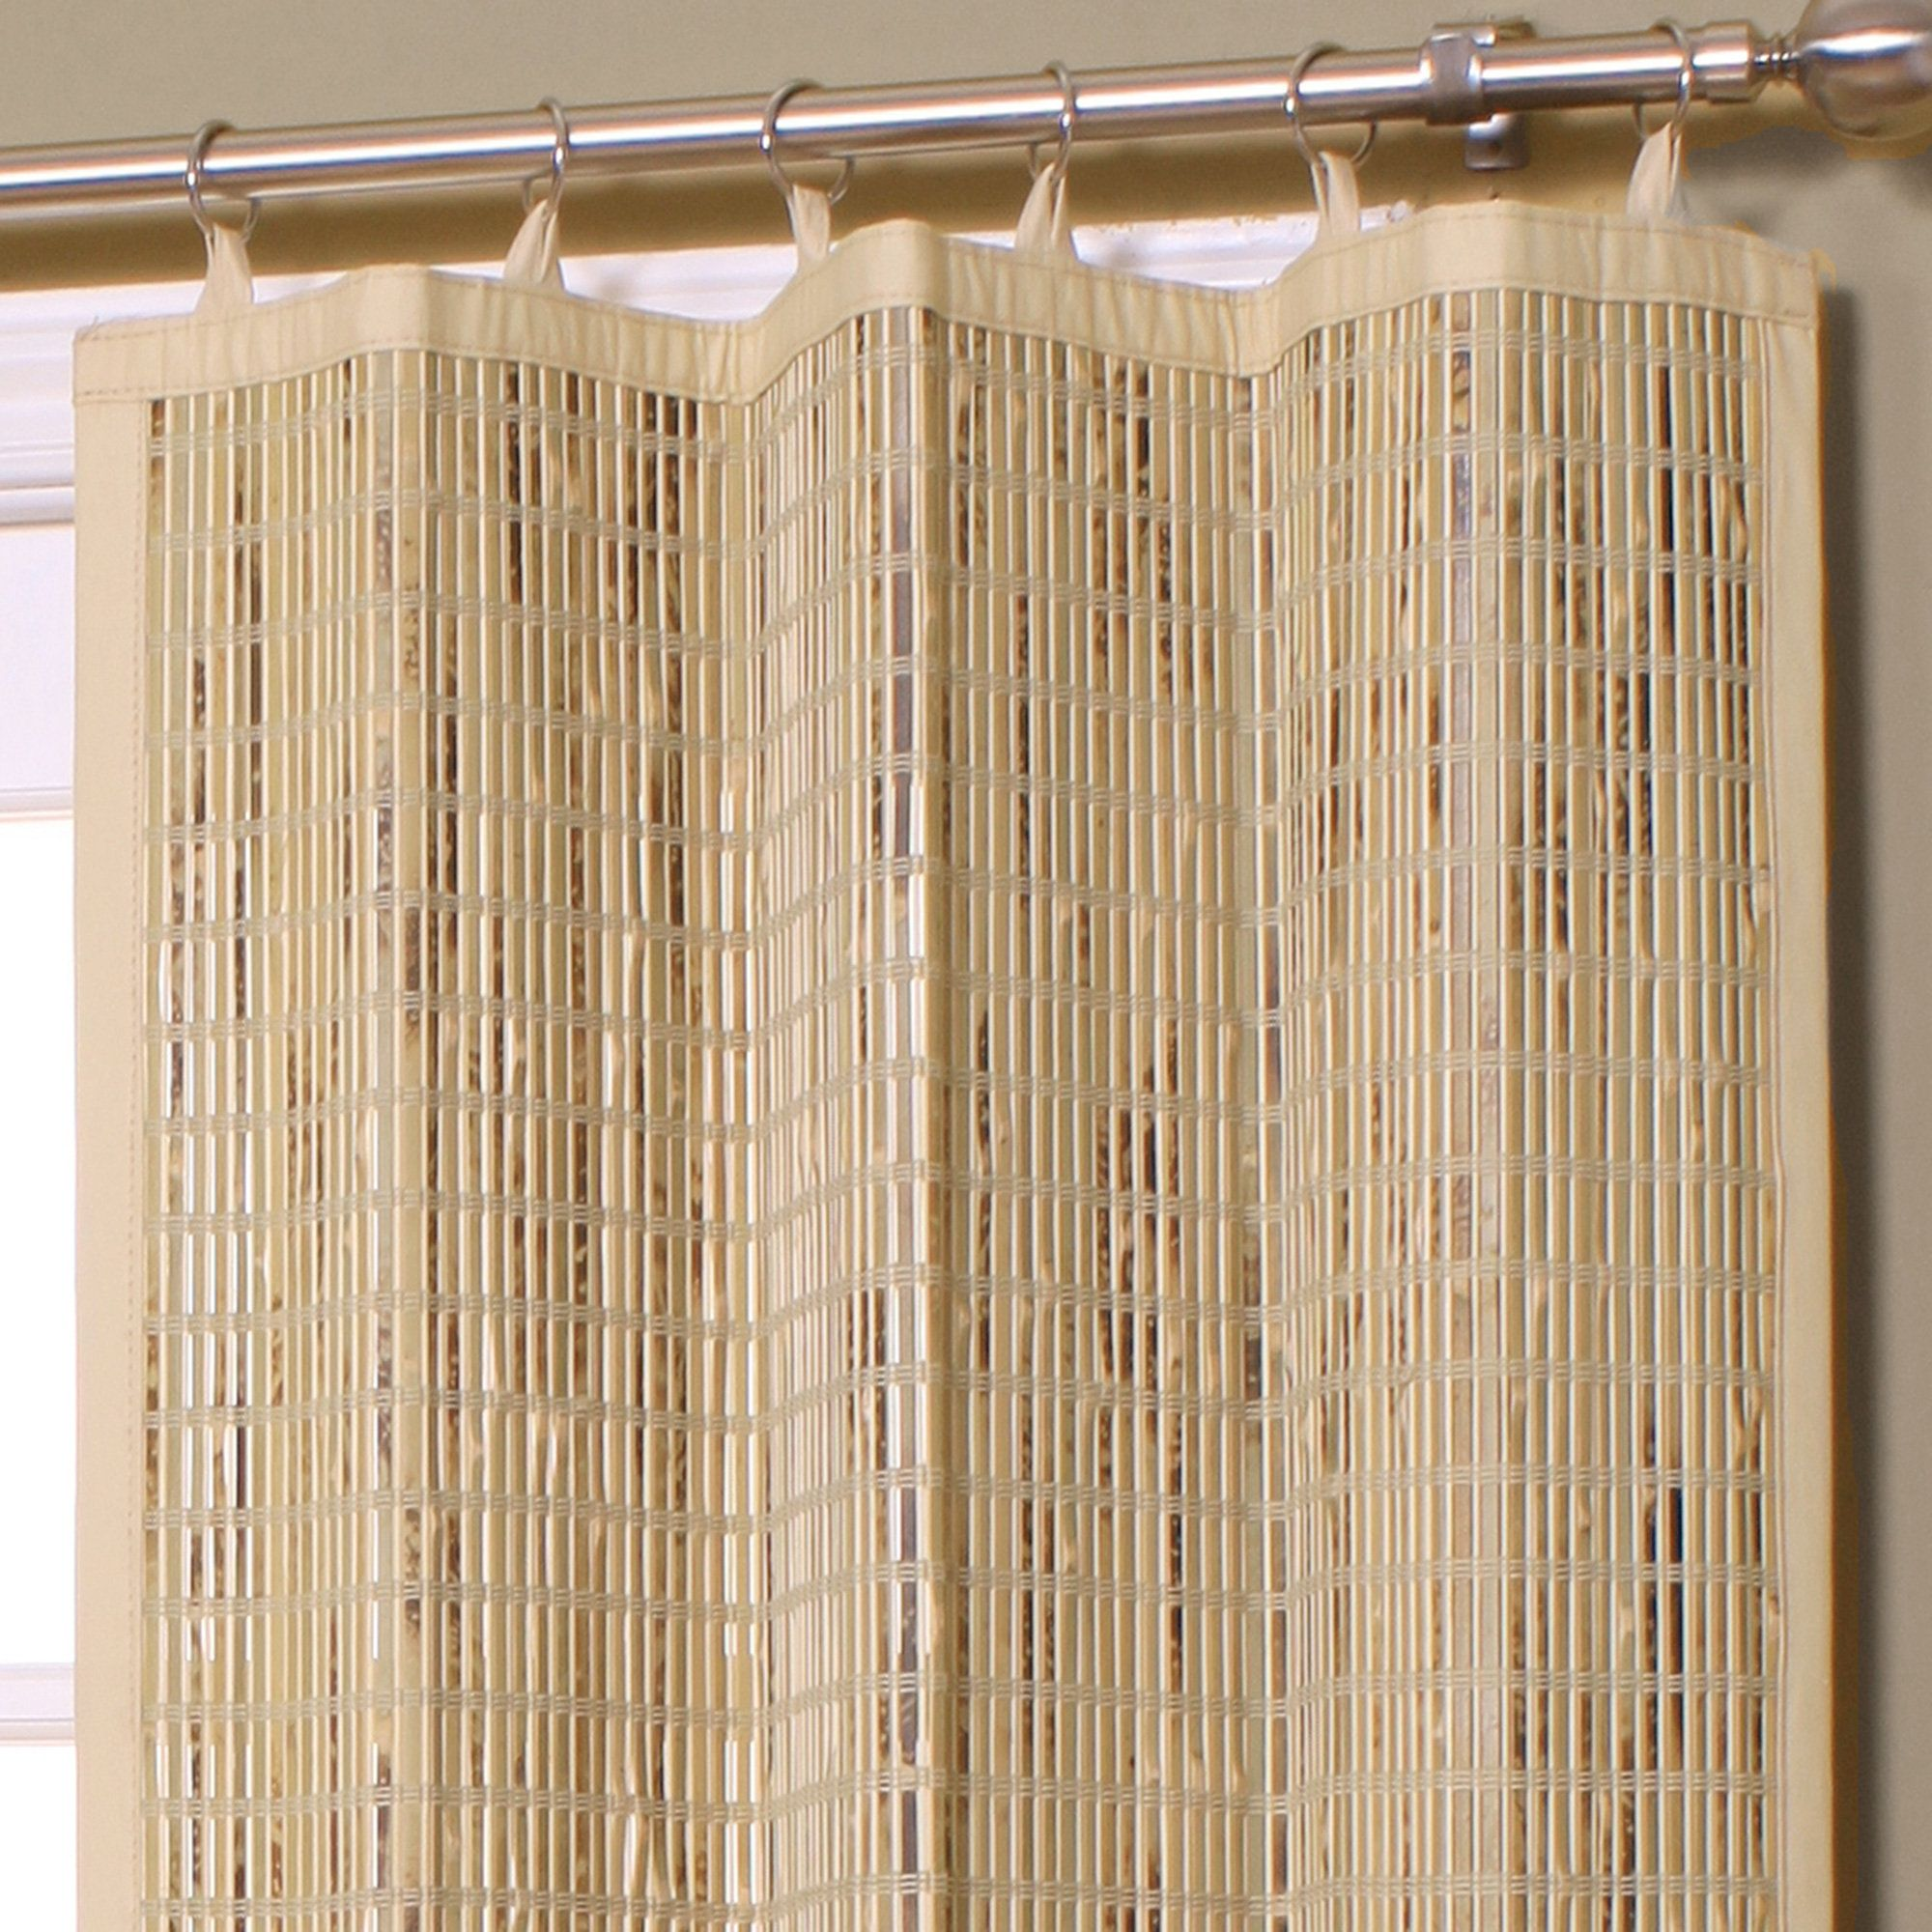 Bamboo Door Curtains Beautiful Accessory and Room Divider